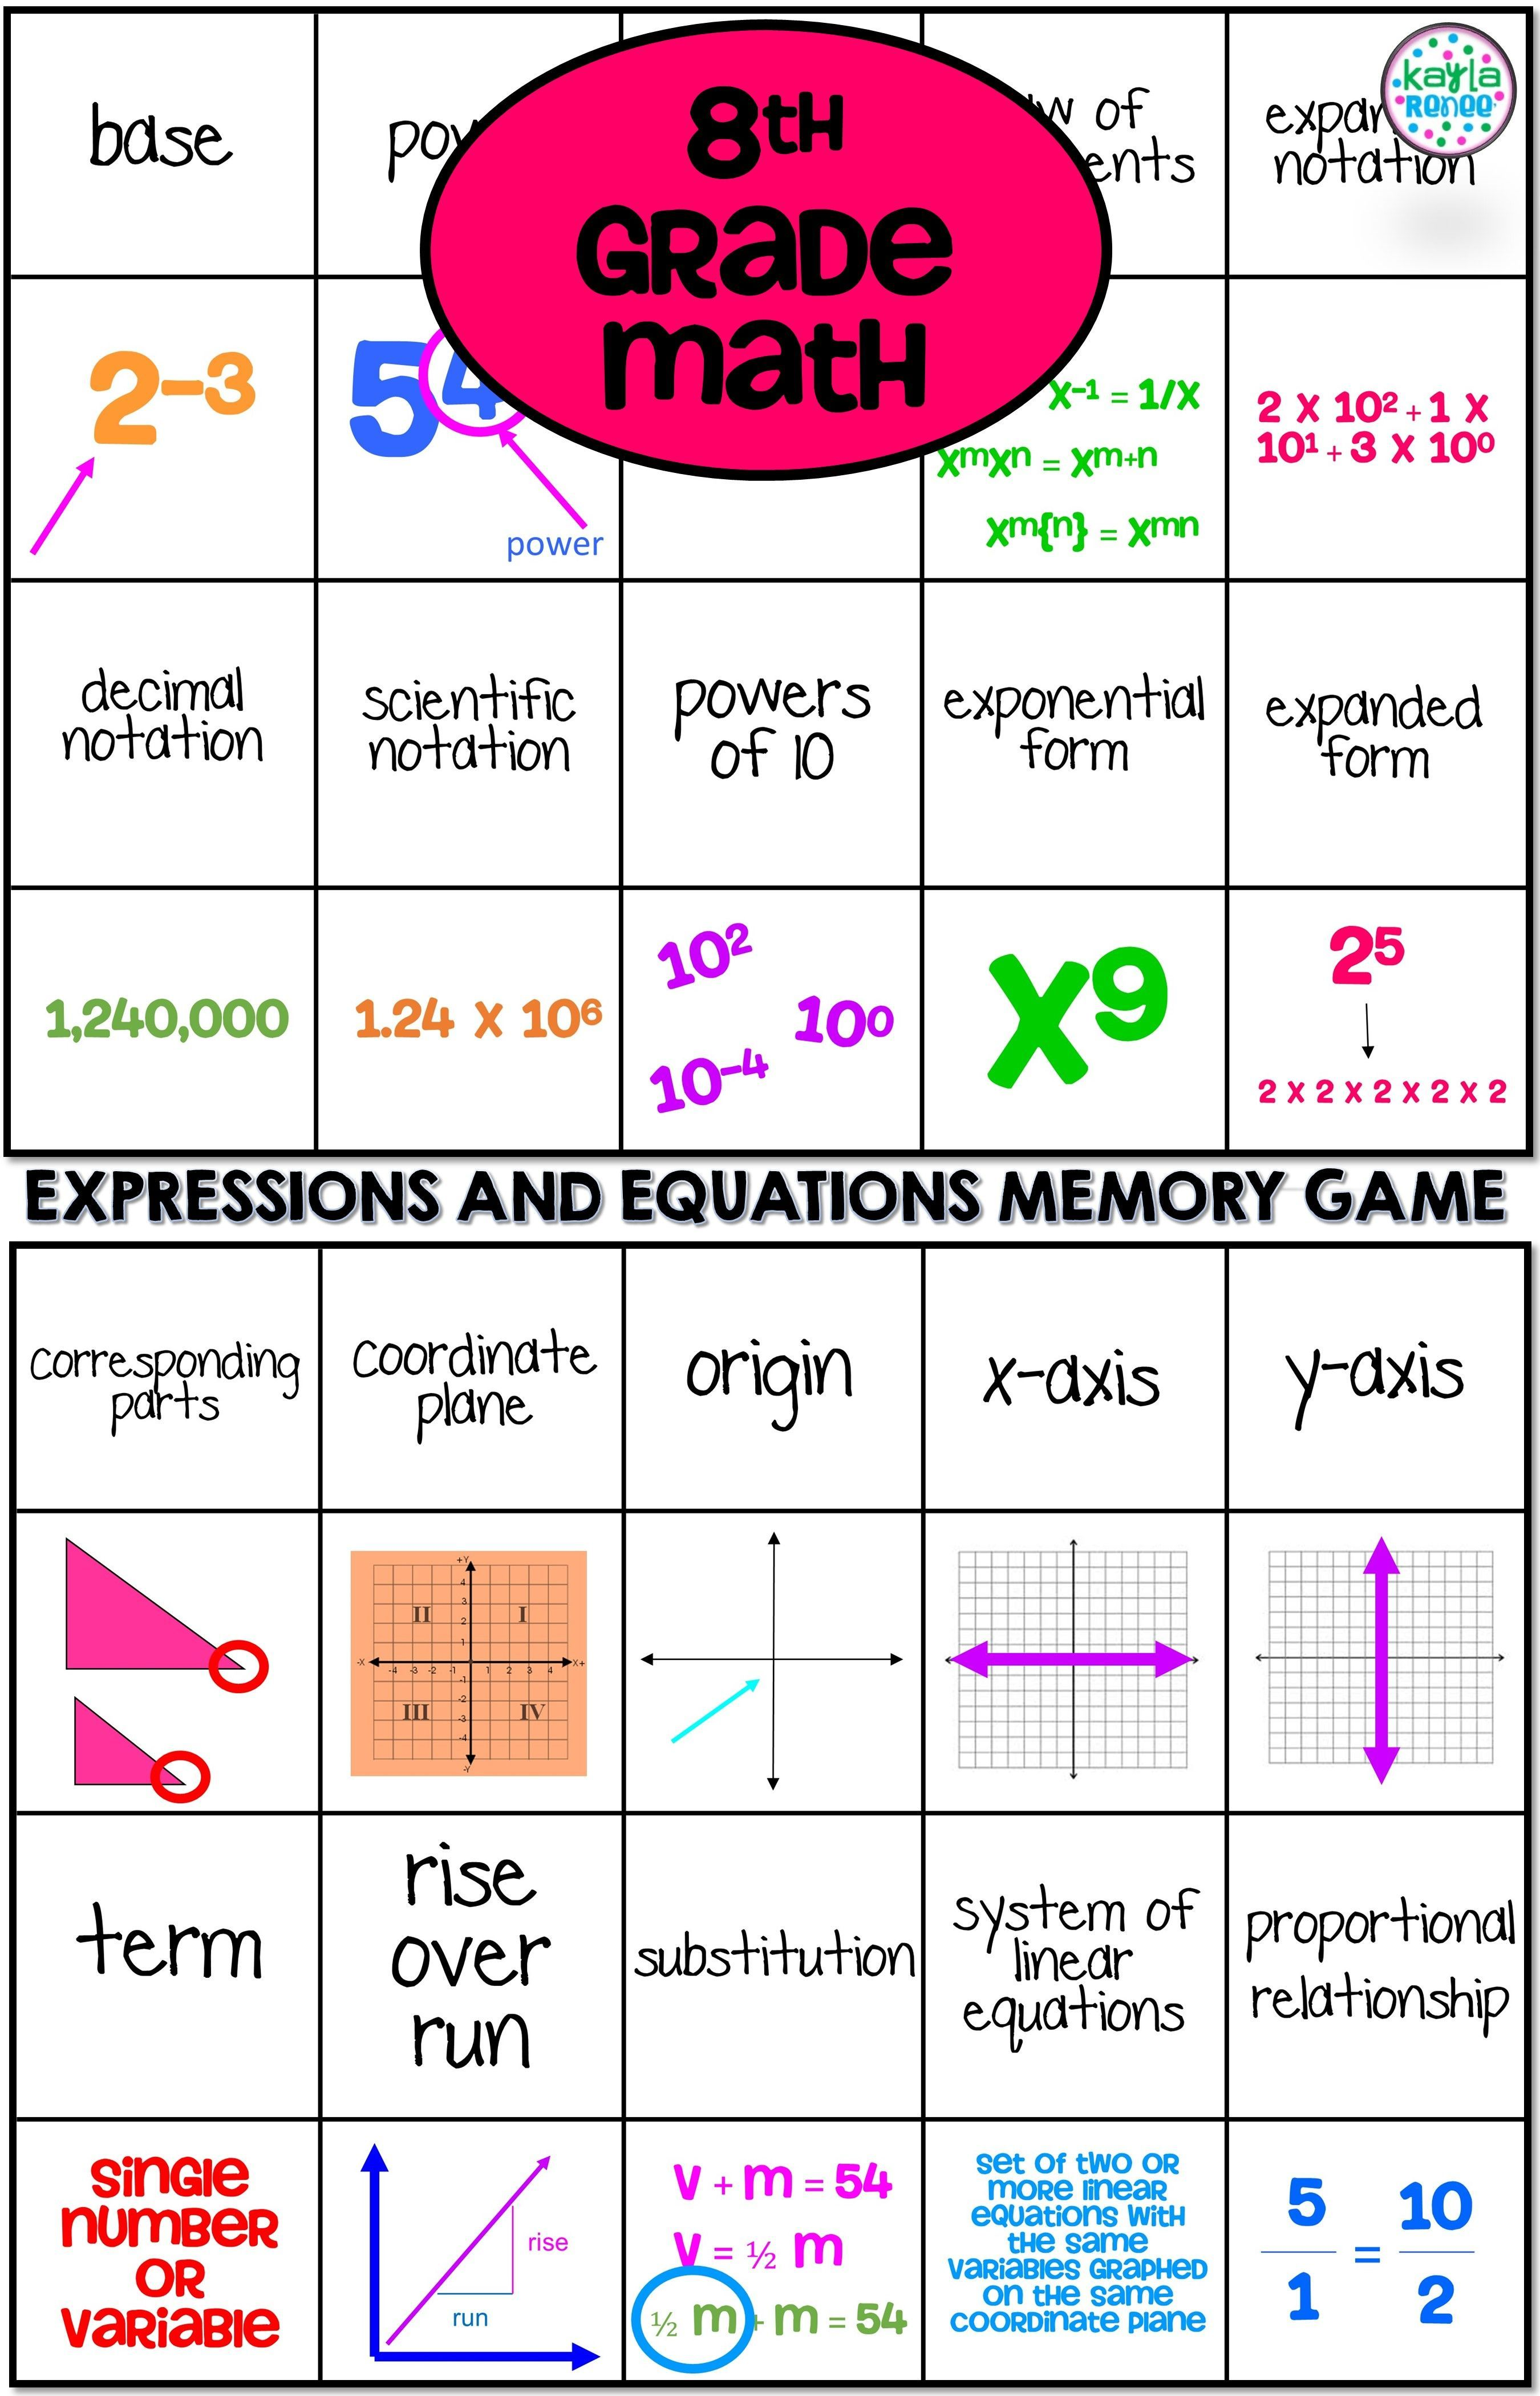 8th Grade Math Expressions And Equations Memory Match Game